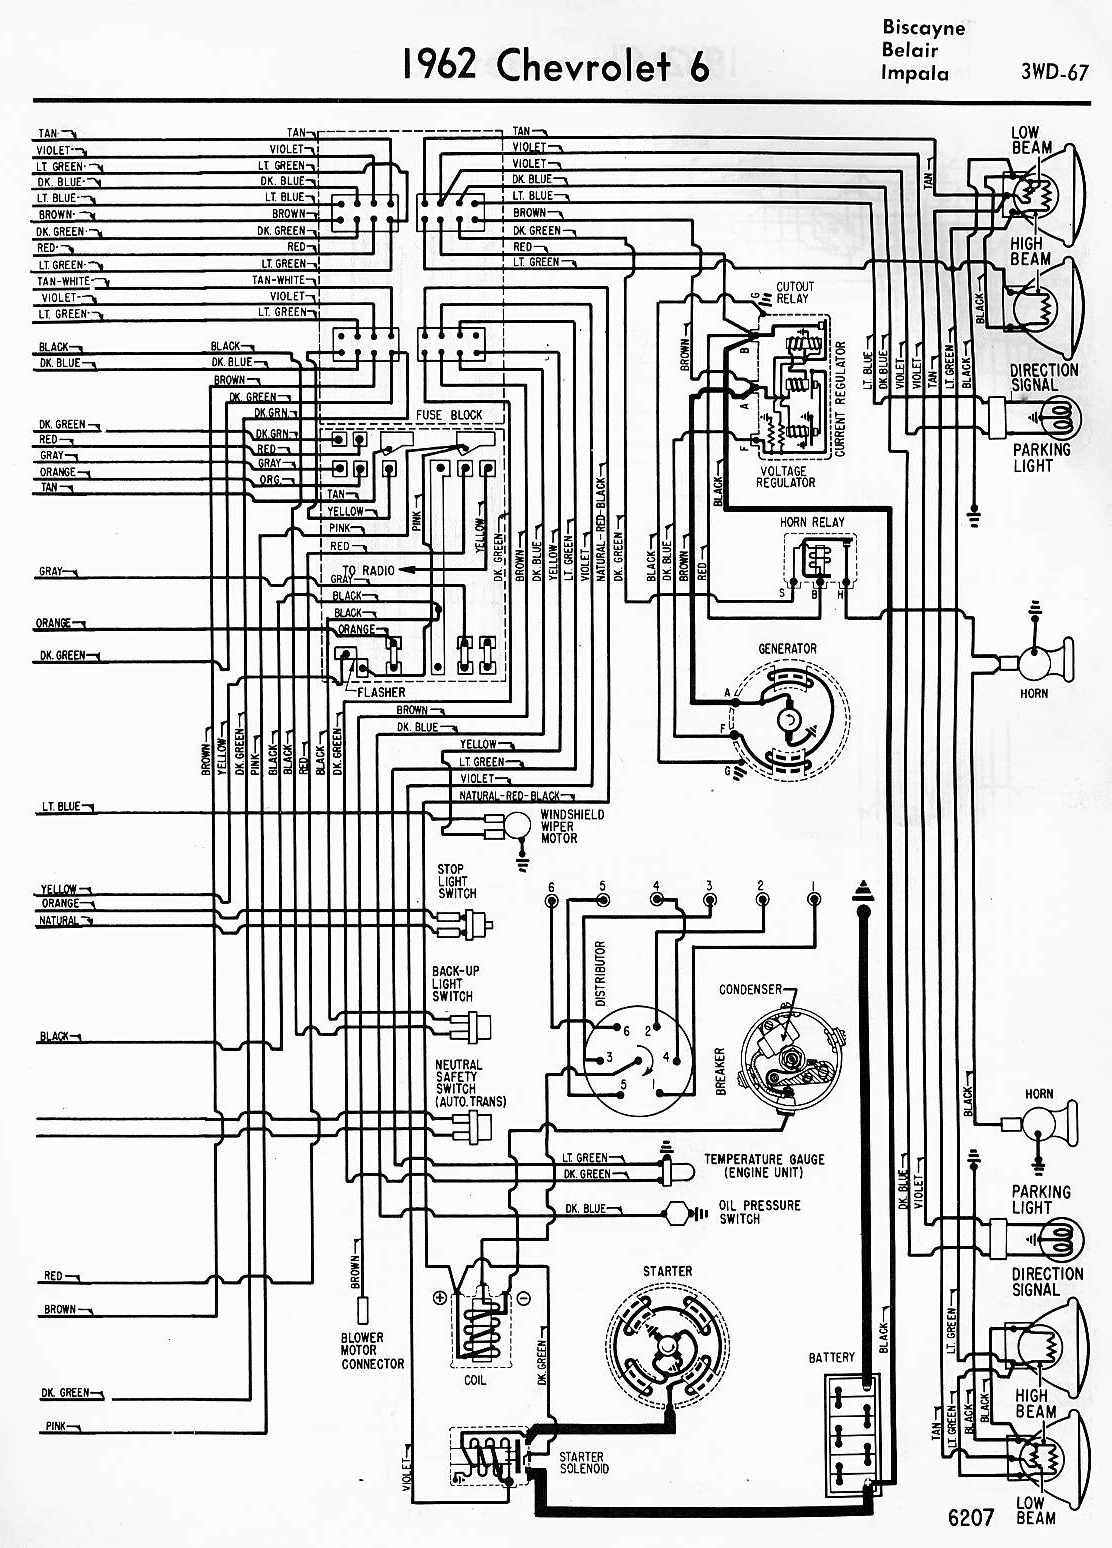 small resolution of 1963 impala headlight switch diagram www topsimages com 2004 chevy impala parts diagram inside diagram 1963